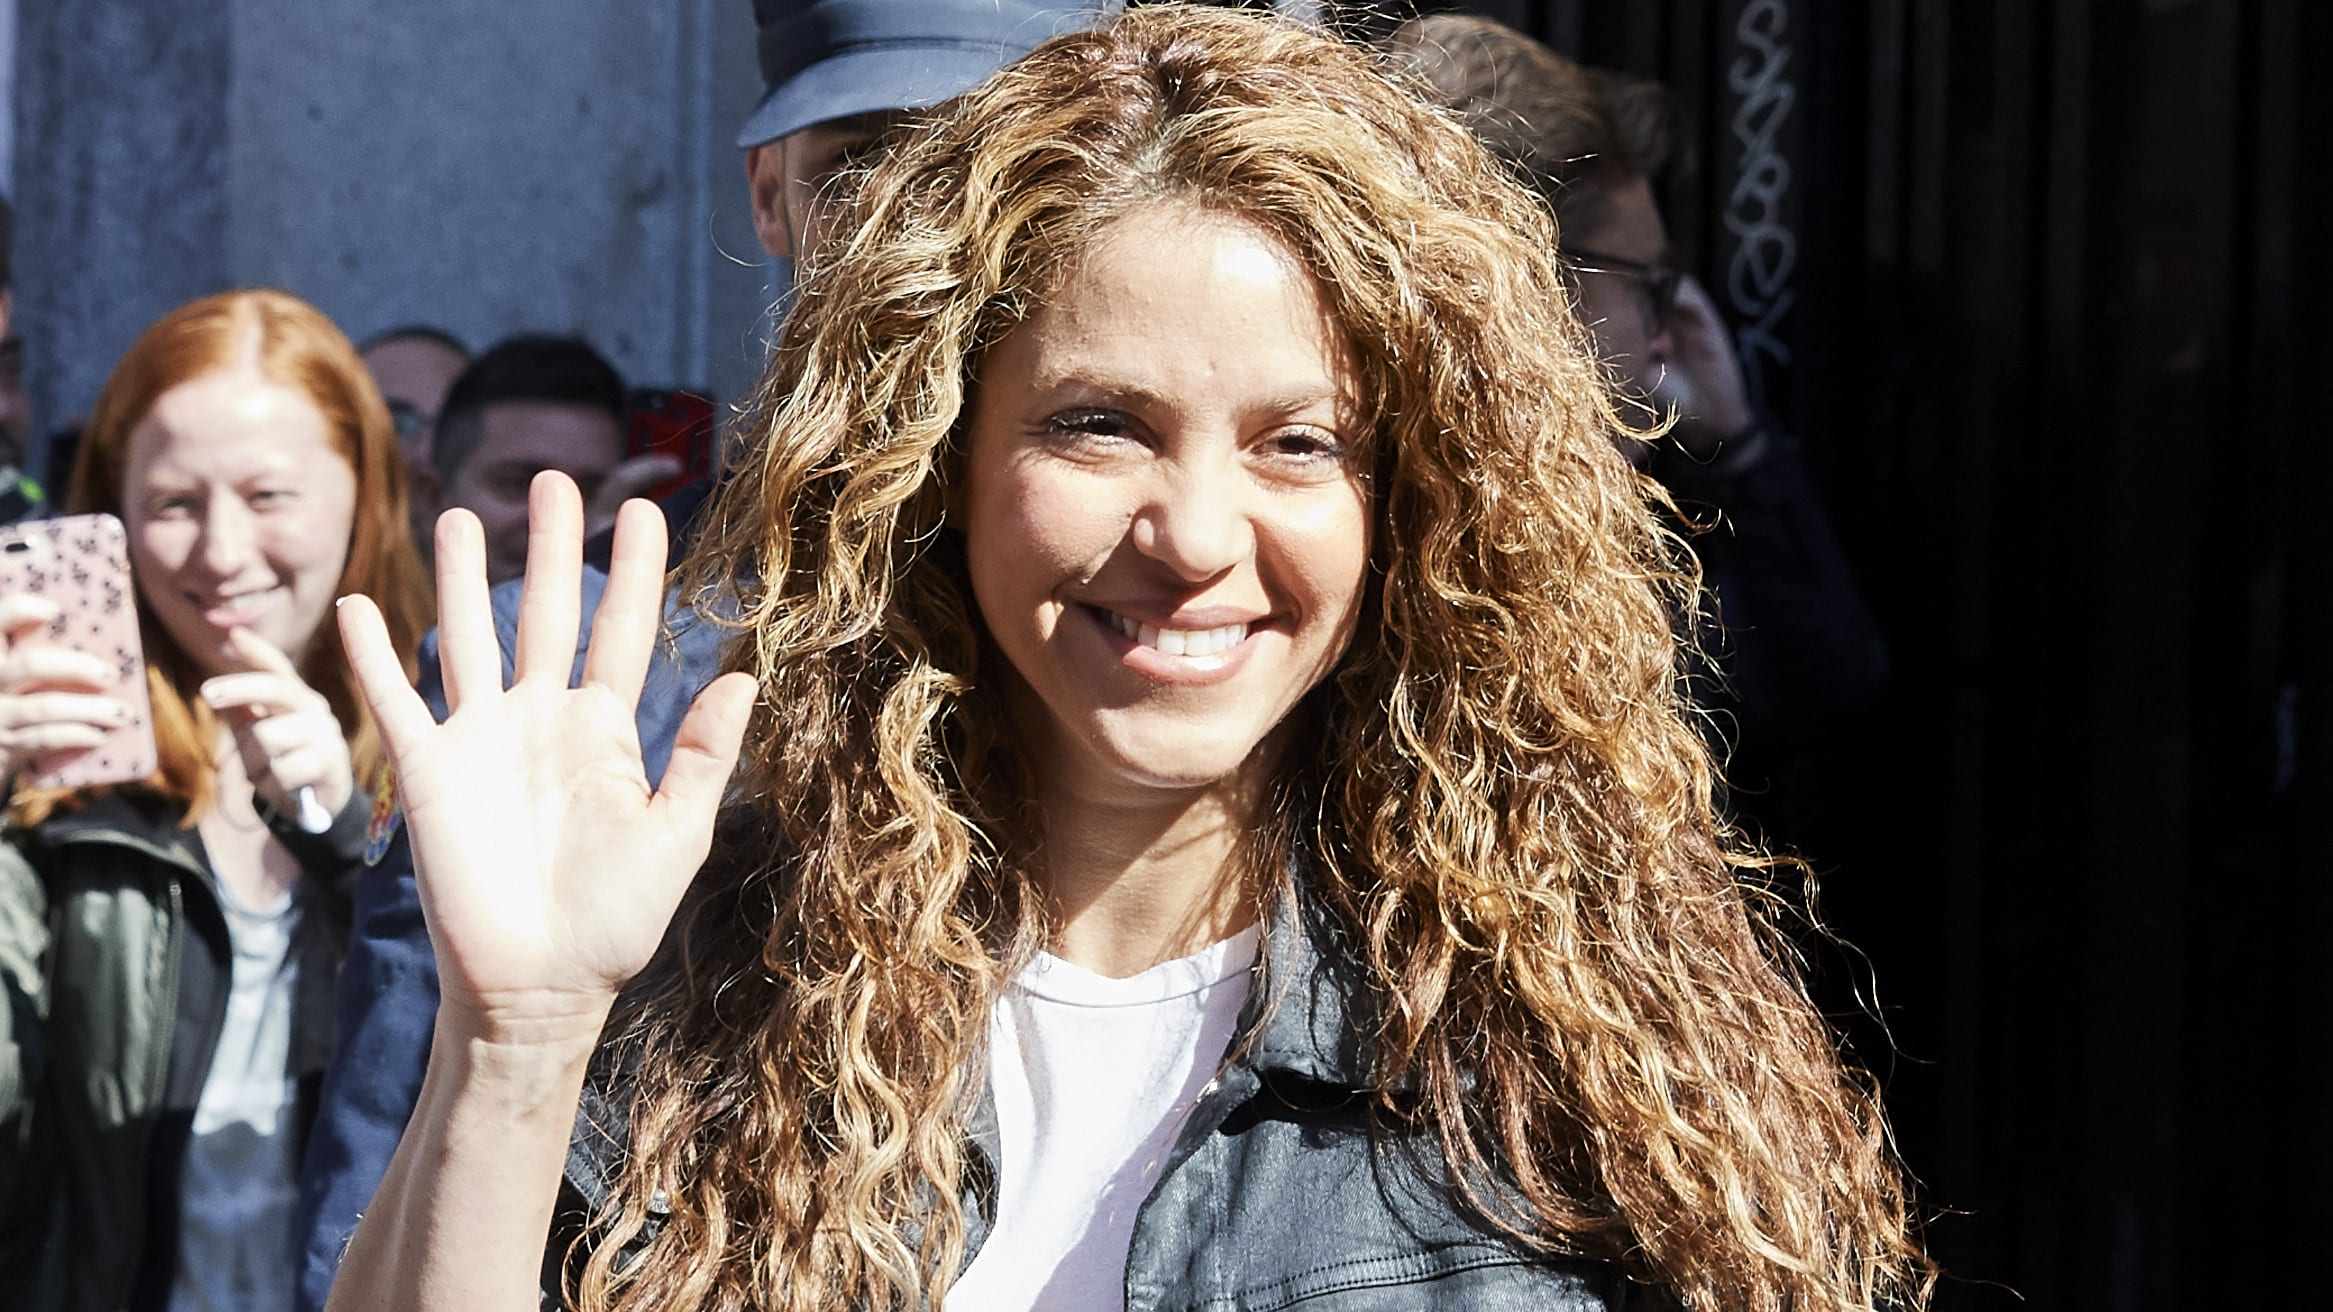 MADRID, SPAIN - MARCH 27: Shakira attends court for plagiarising the song 'La Bicicleta' on March 27, 2019 in Madrid, Spain. (Photo by Carlos Alvarez/Getty Images)